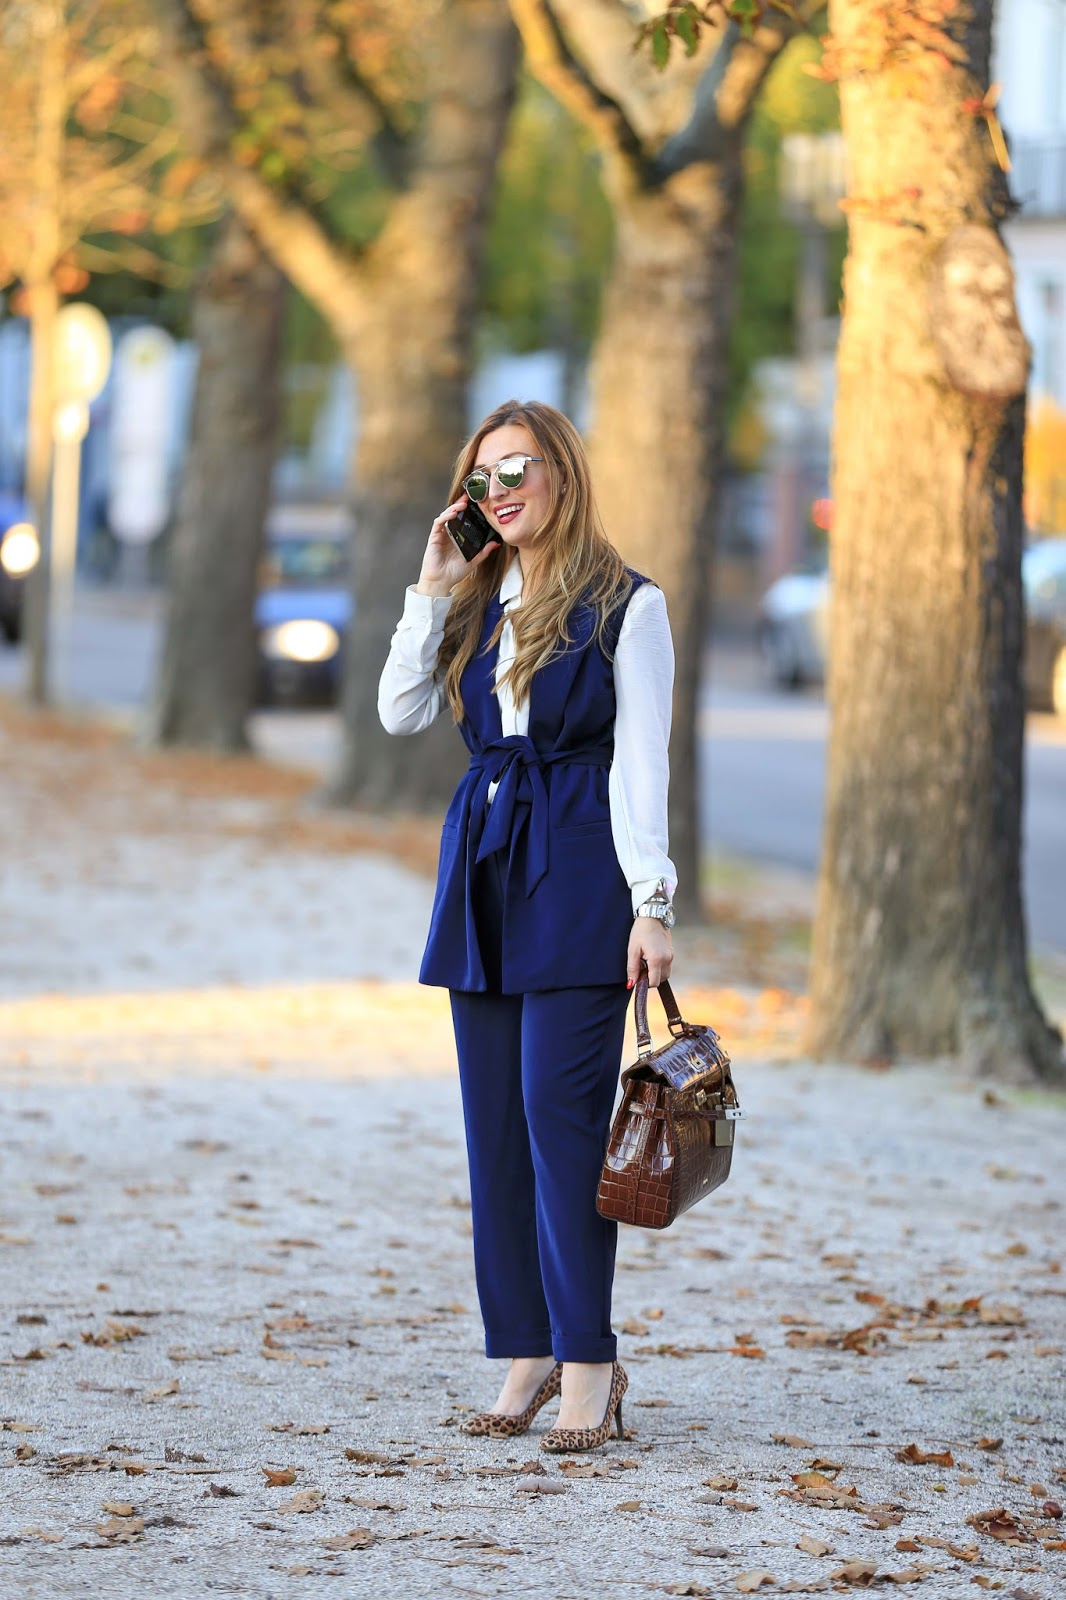 Business Look - Olivia Palermo Style - Acatel Pop 4 S Handy- Dior Sonnenbrille